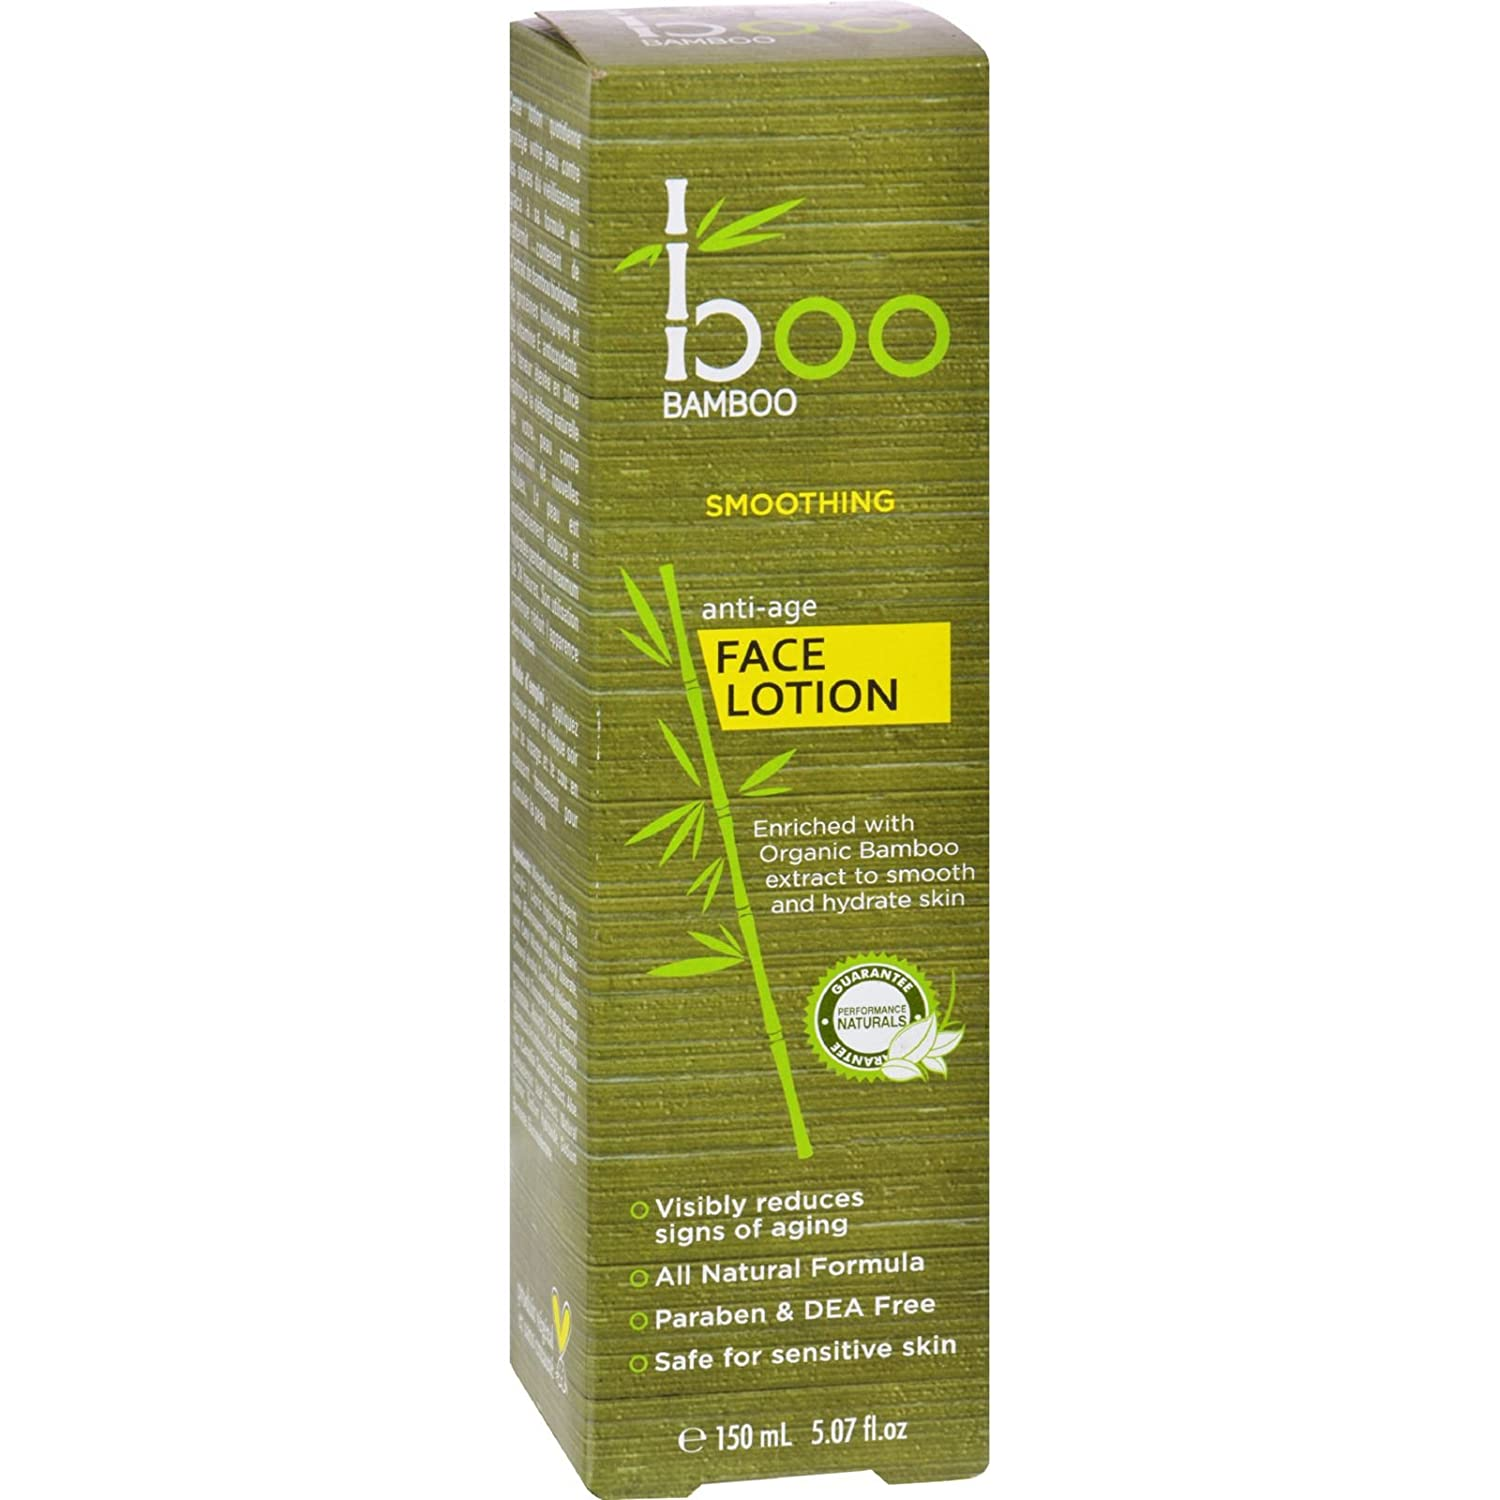 Boo Bamboo Anti-Age Face Lotion For Smooth Skin, 5.07 oz, 3 Pack First Aid Beauty Dual Repair Power Serum, 1.0 fl. oz.